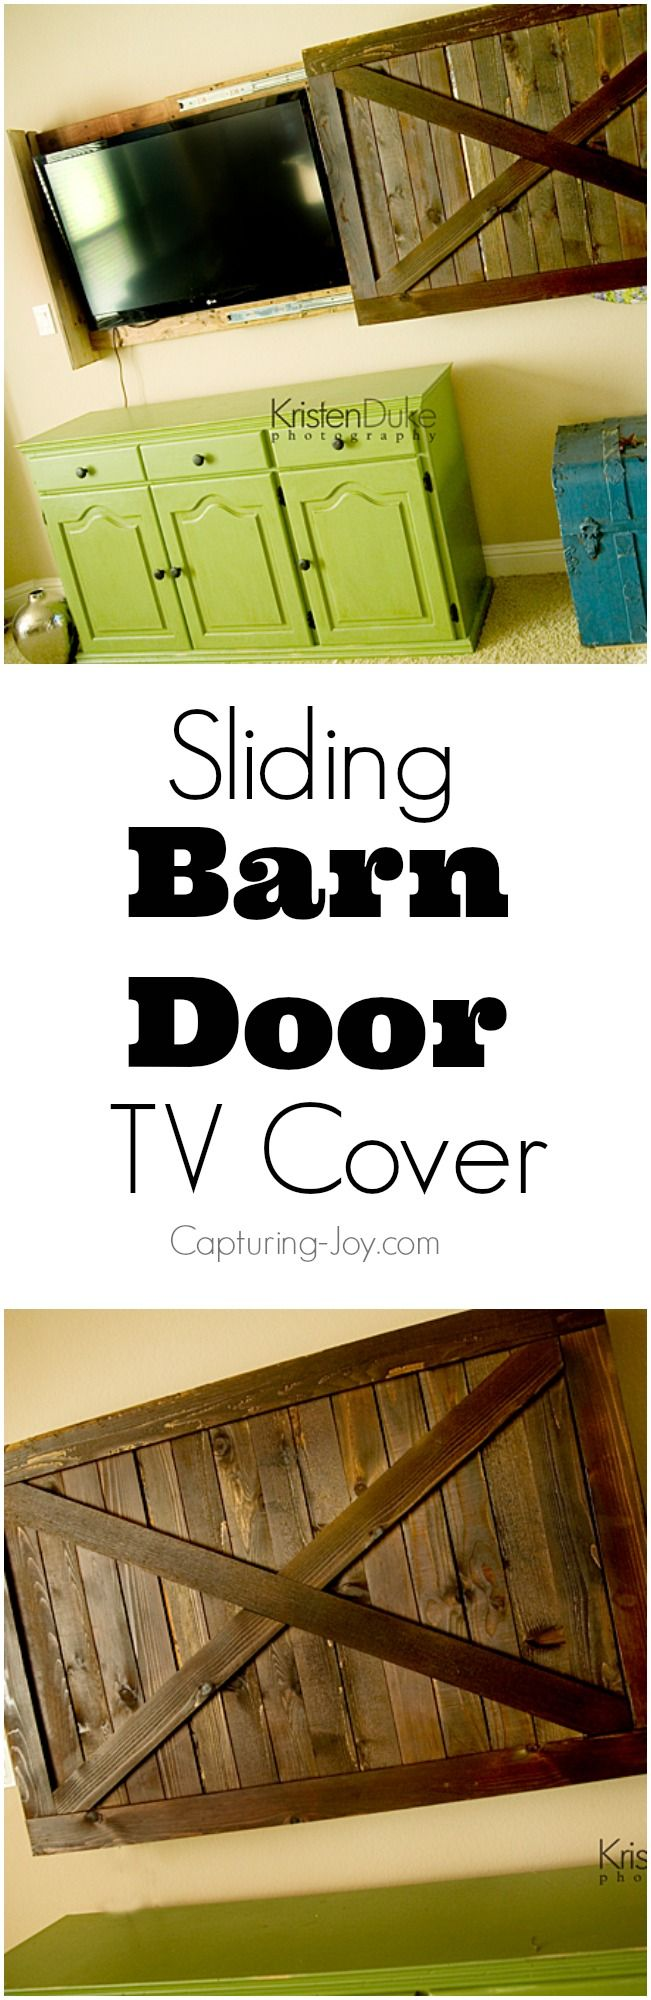 Cover your TV when it isn't in use!  DIY Sliding Barn Door TV Cover Tutorial on Capturing-Joy.com